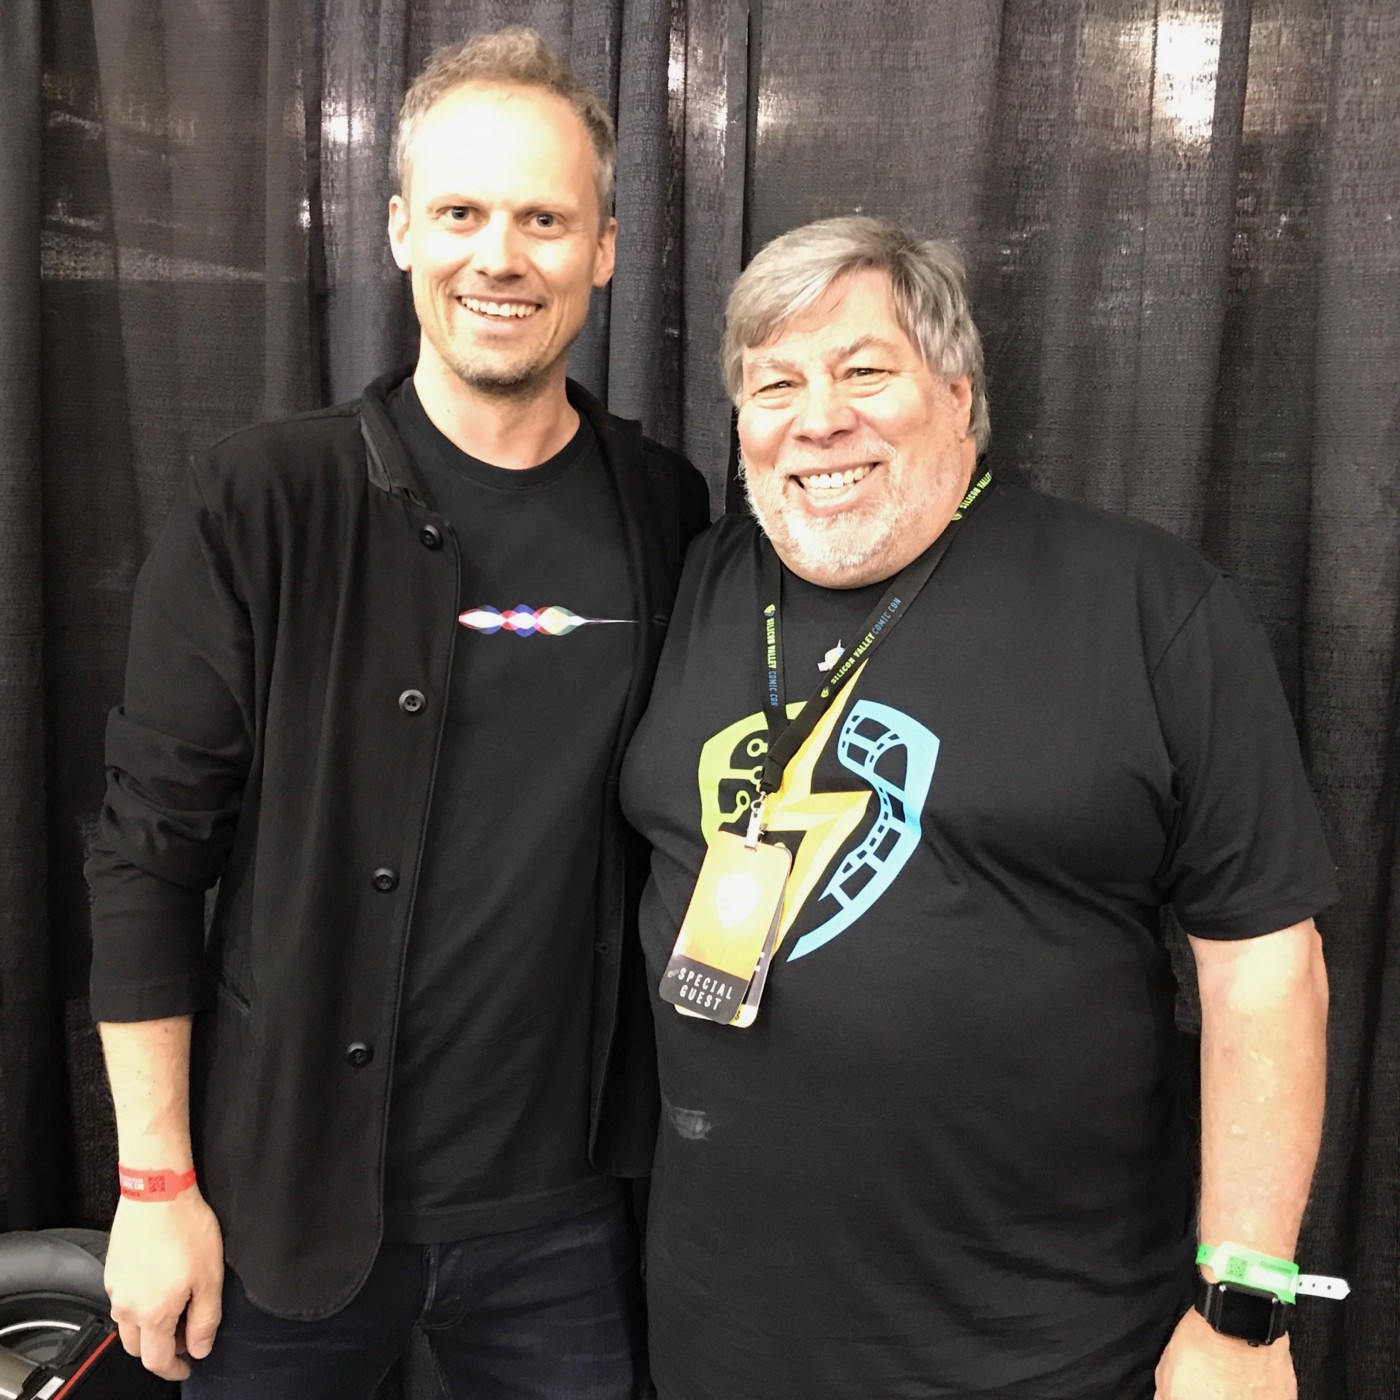 Teodor Bjerrang and Steve Wozniak — 30. April 2017 at the Silicon Valley Comic Con in San Jose